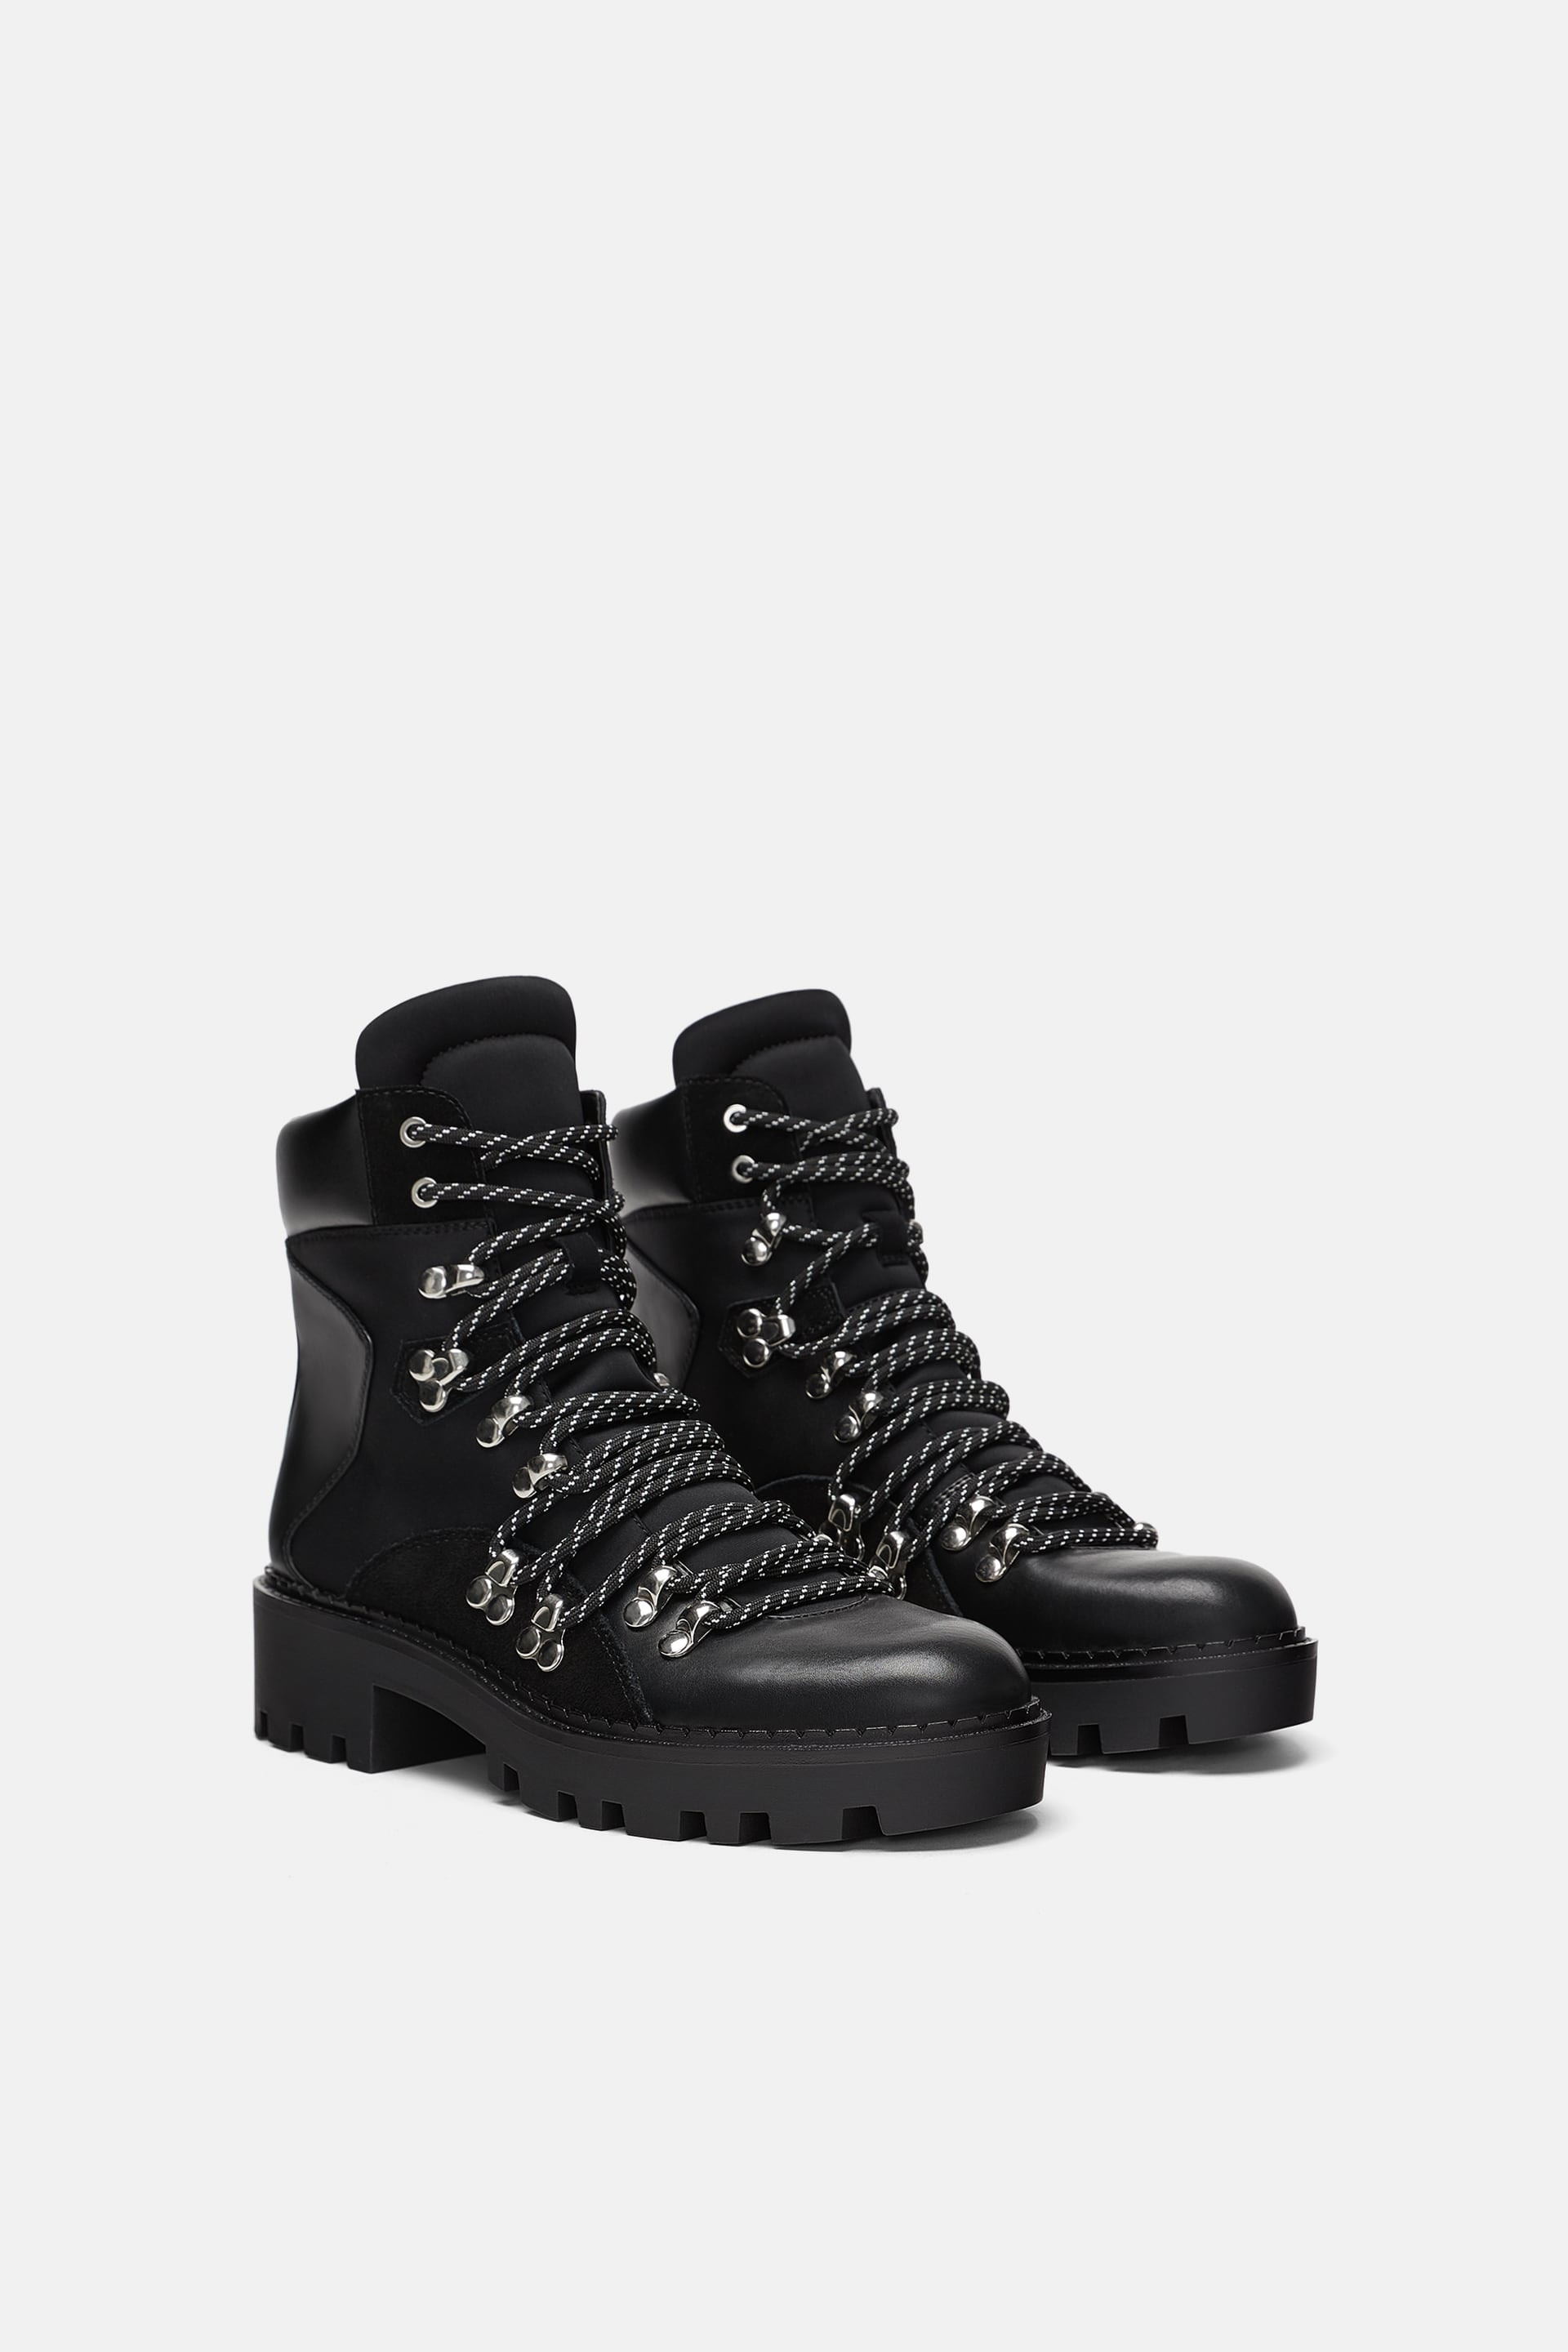 8c0633087b8 Fashionable Hiking Boots Are Winter's Must-Try Trend